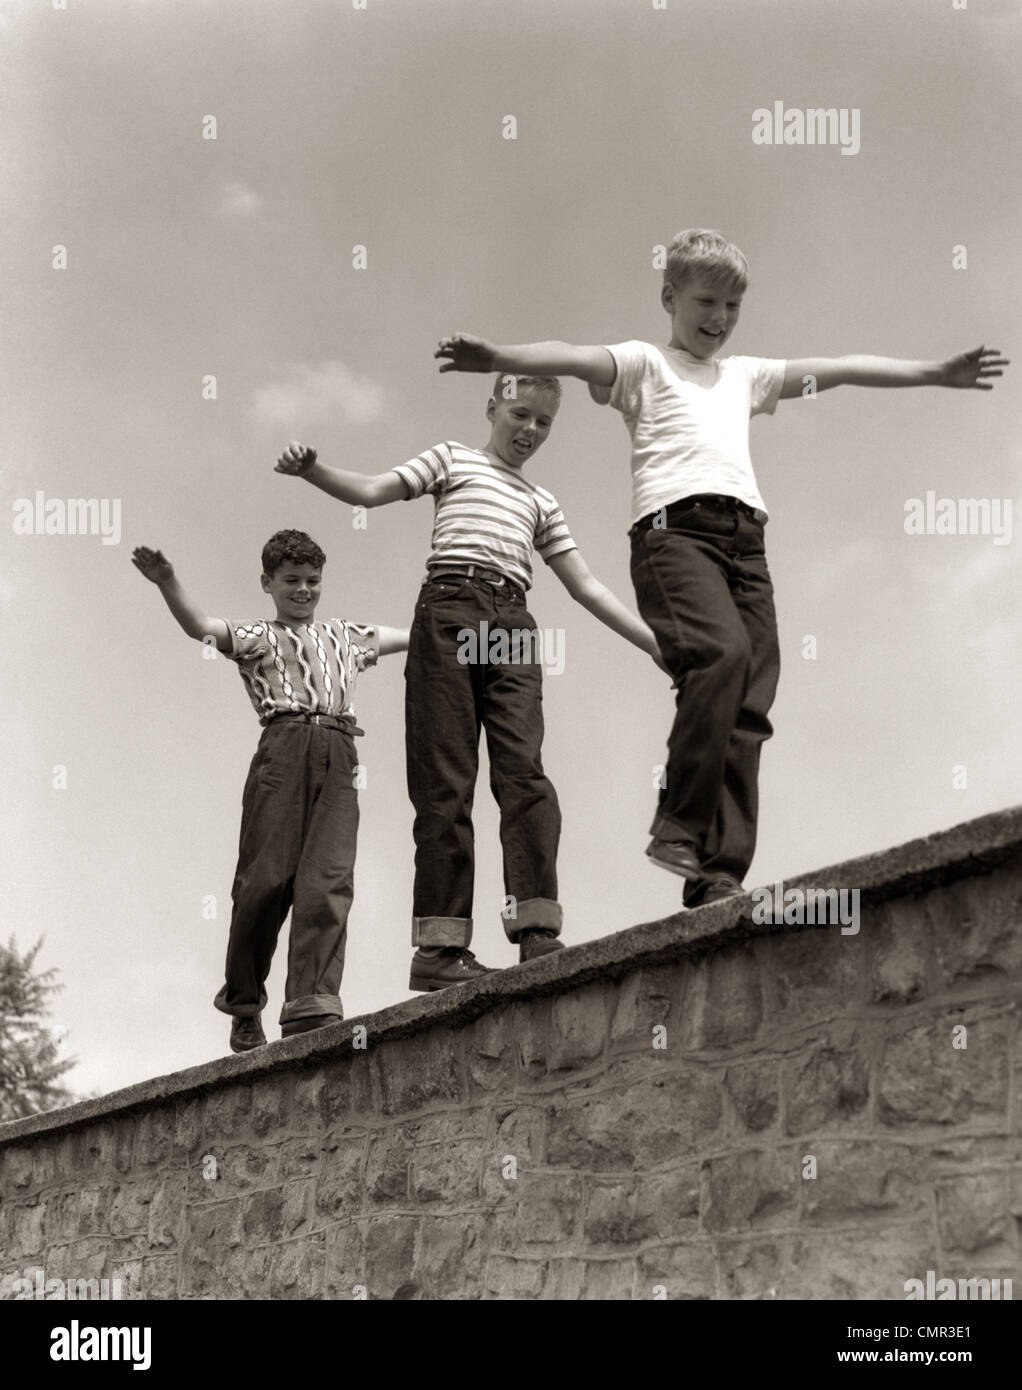 1950s THREE LAUGHING BOYS WALKING ON TOP OF STONE WALL ARMS OUT BALANCING PLAYING FOLLOW THE LEADER - Stock Image